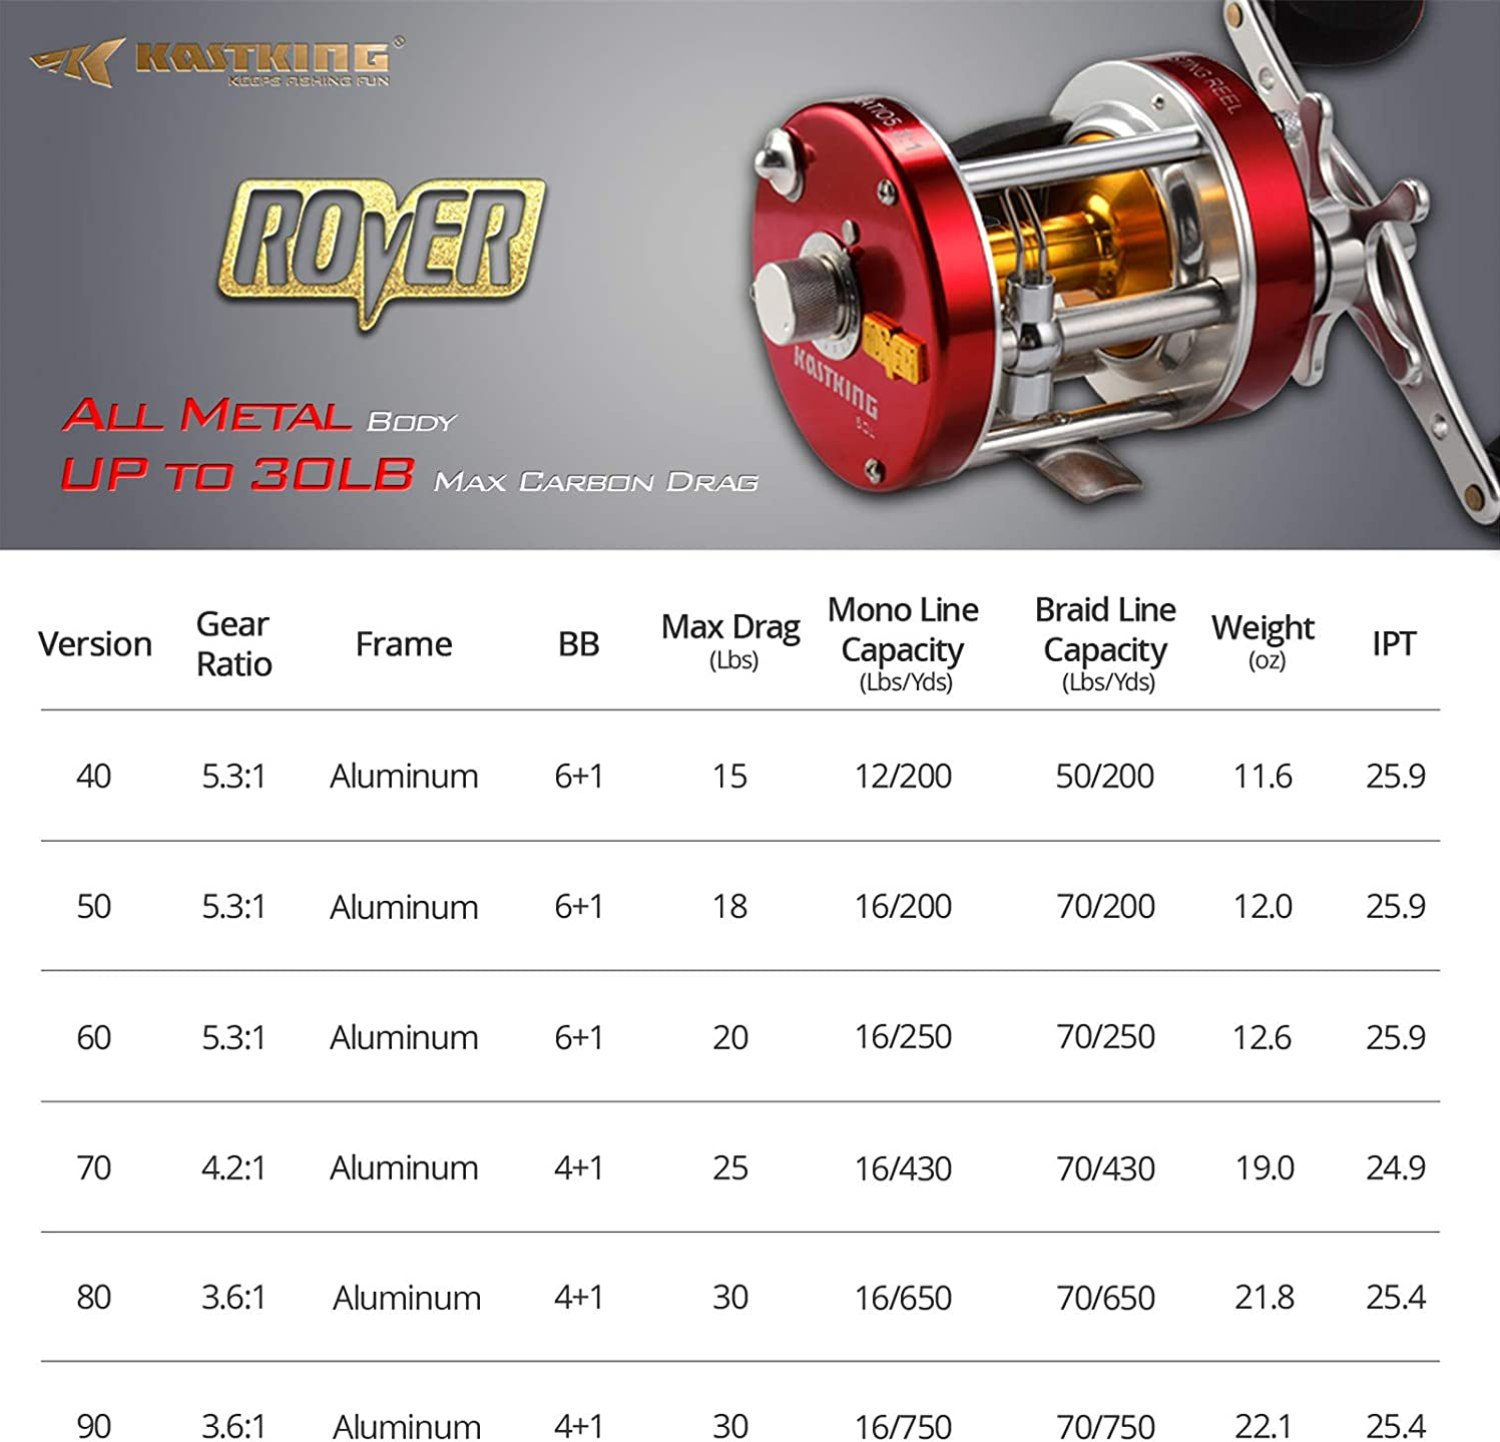 KastKing Rover Round Baitcasting Reel Features